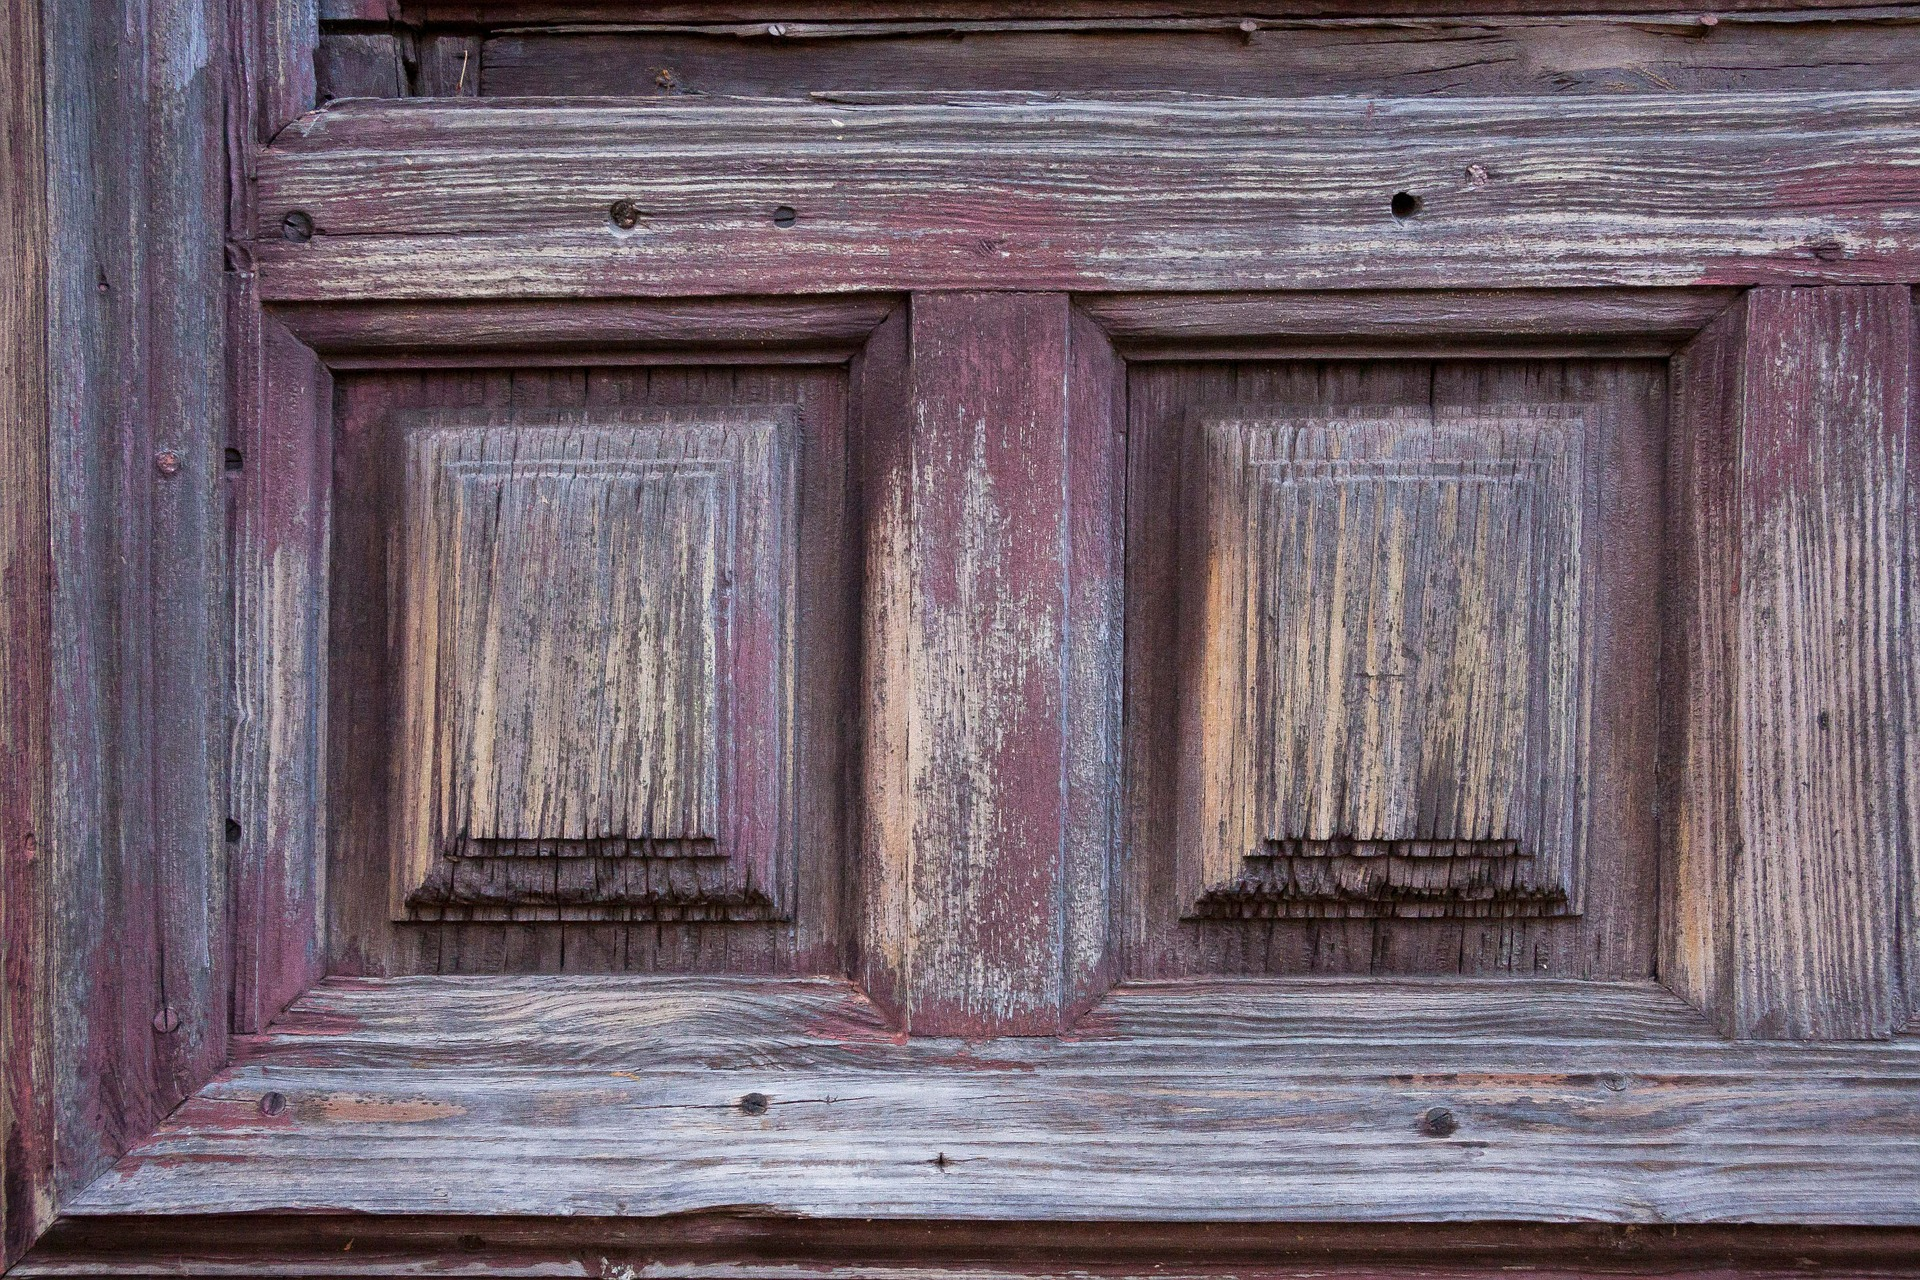 Door Design, Design, Door, Texture, Wood, HQ Photo